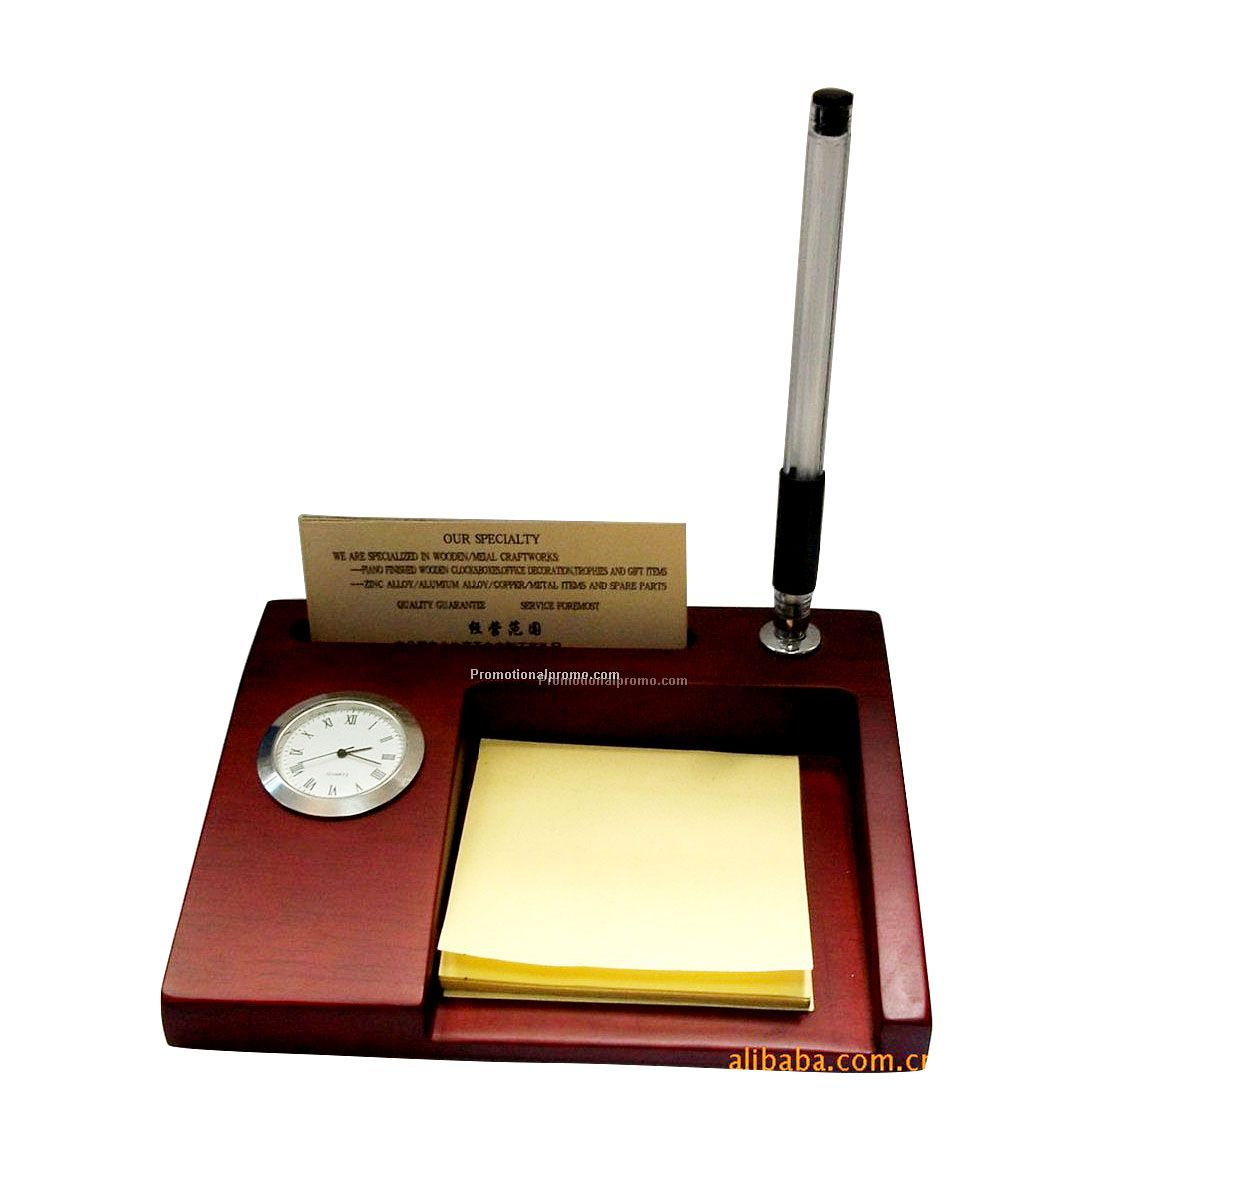 Promotional muti-function wood desktop clock